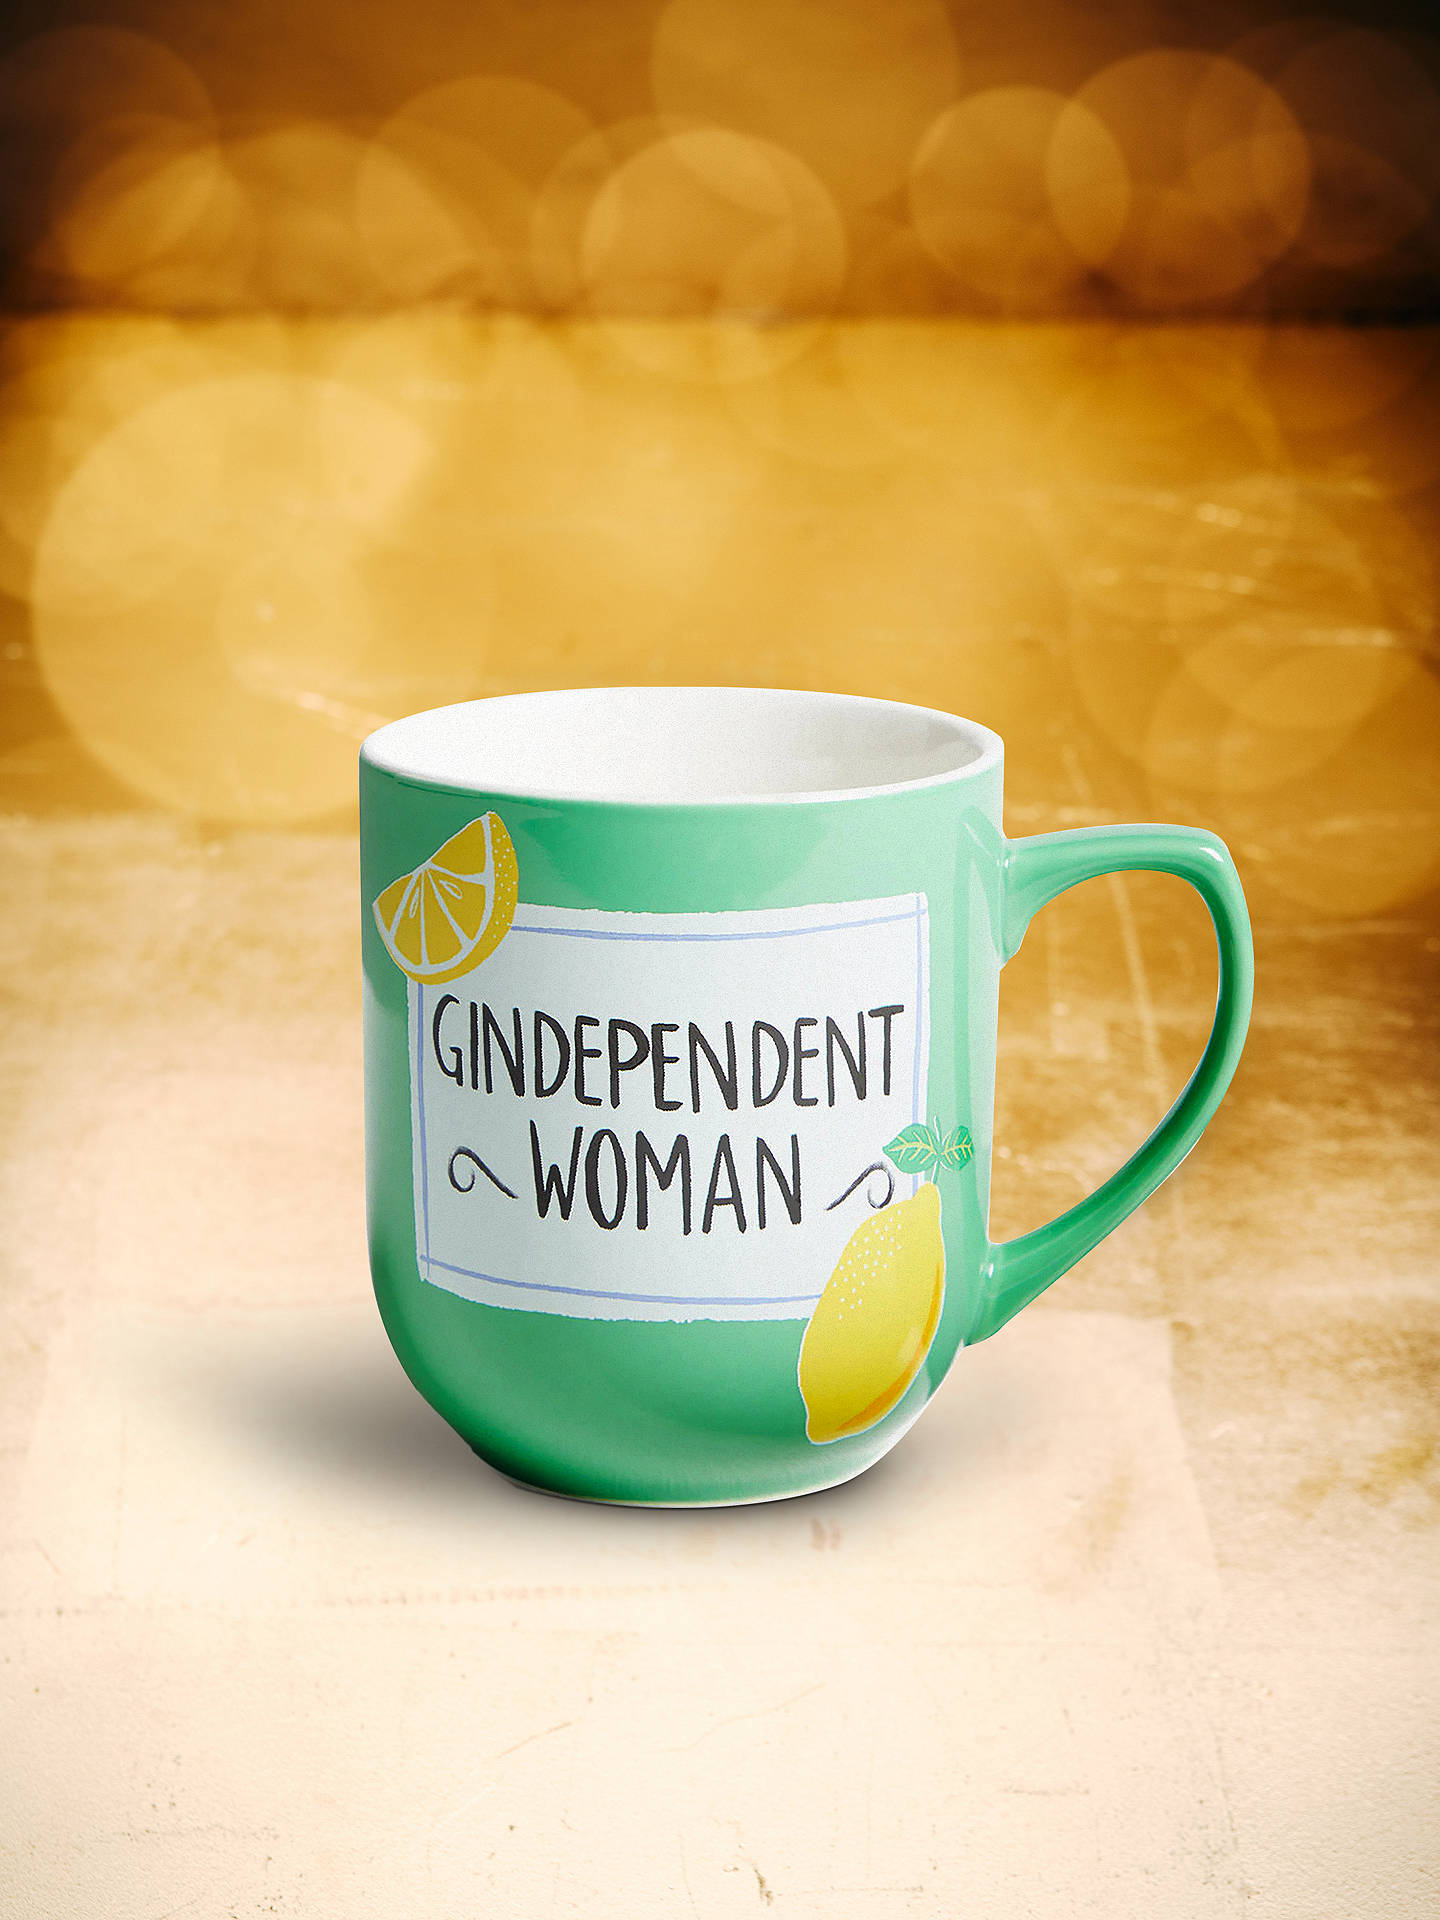 dfd295d3d498 Buy John Lewis & Partners Gindependent Woman Mug, 330ml, Green/Multi Online  at ...